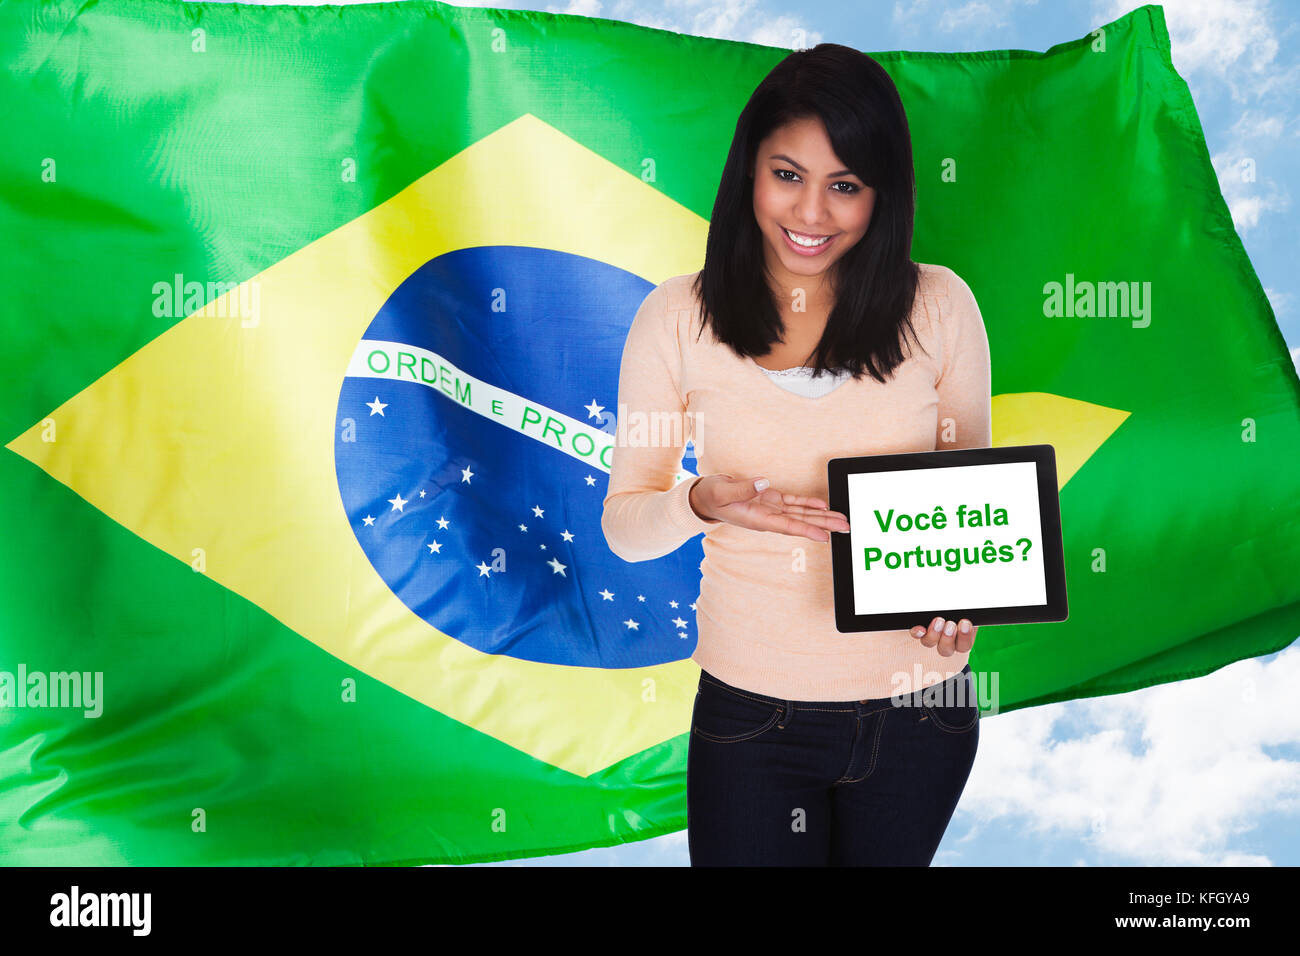 Young Woman Holding Digital Tablet Asking Do You Speak Portuguese In Front Of Brazilian Flag Stock Photo